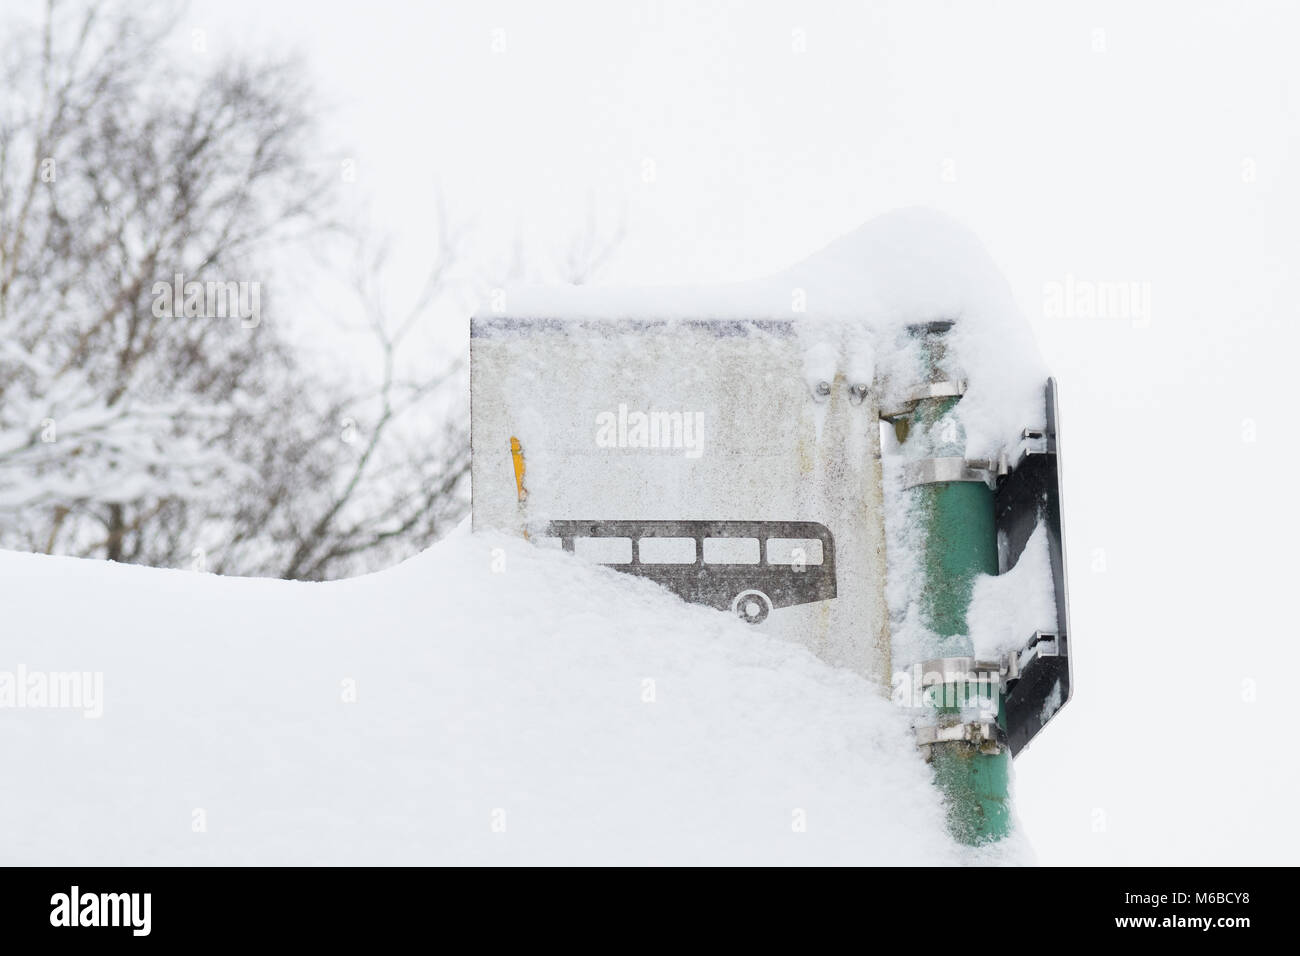 bus stop sign covered in snow - public transport in winter concept - Scotland, UK - Stock Image